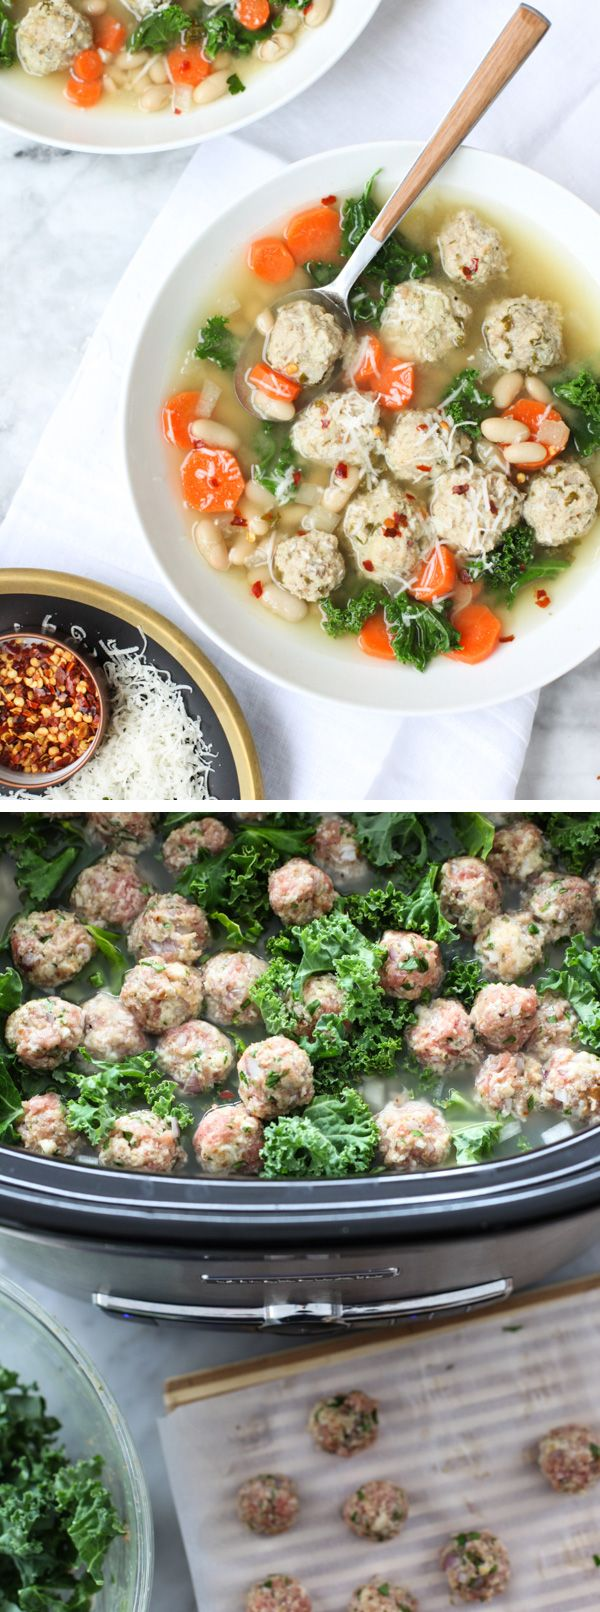 tote bag offer Kale  beans and mini turkey meatballs make this a filling  but healthy slow cooker dinner for any day of the week